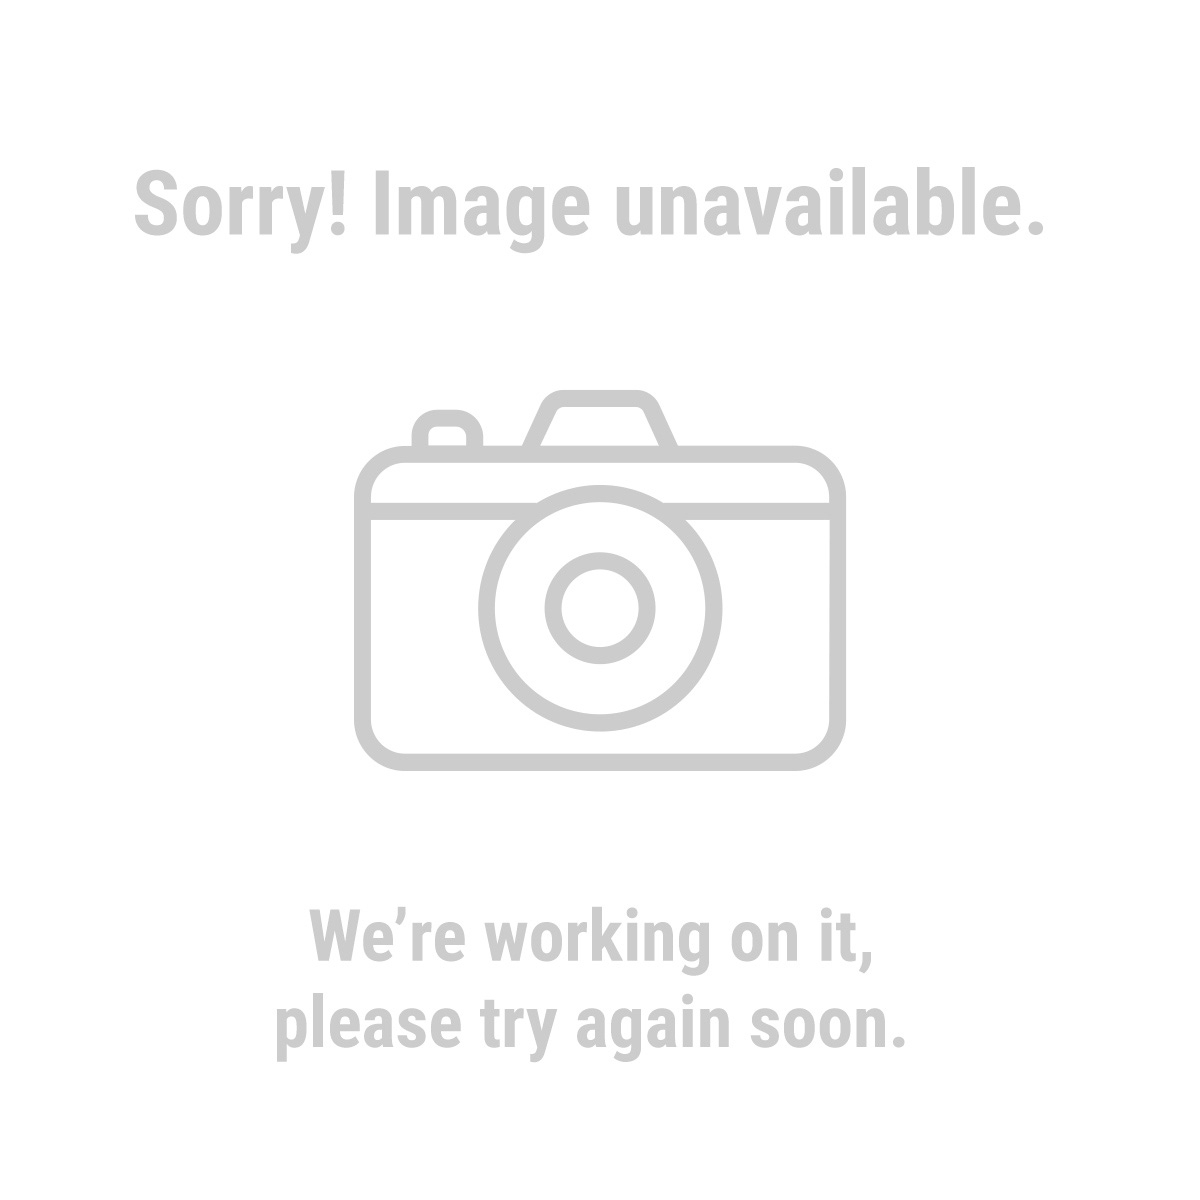 38432 5 Piece Touch-Up Paint Roller Set